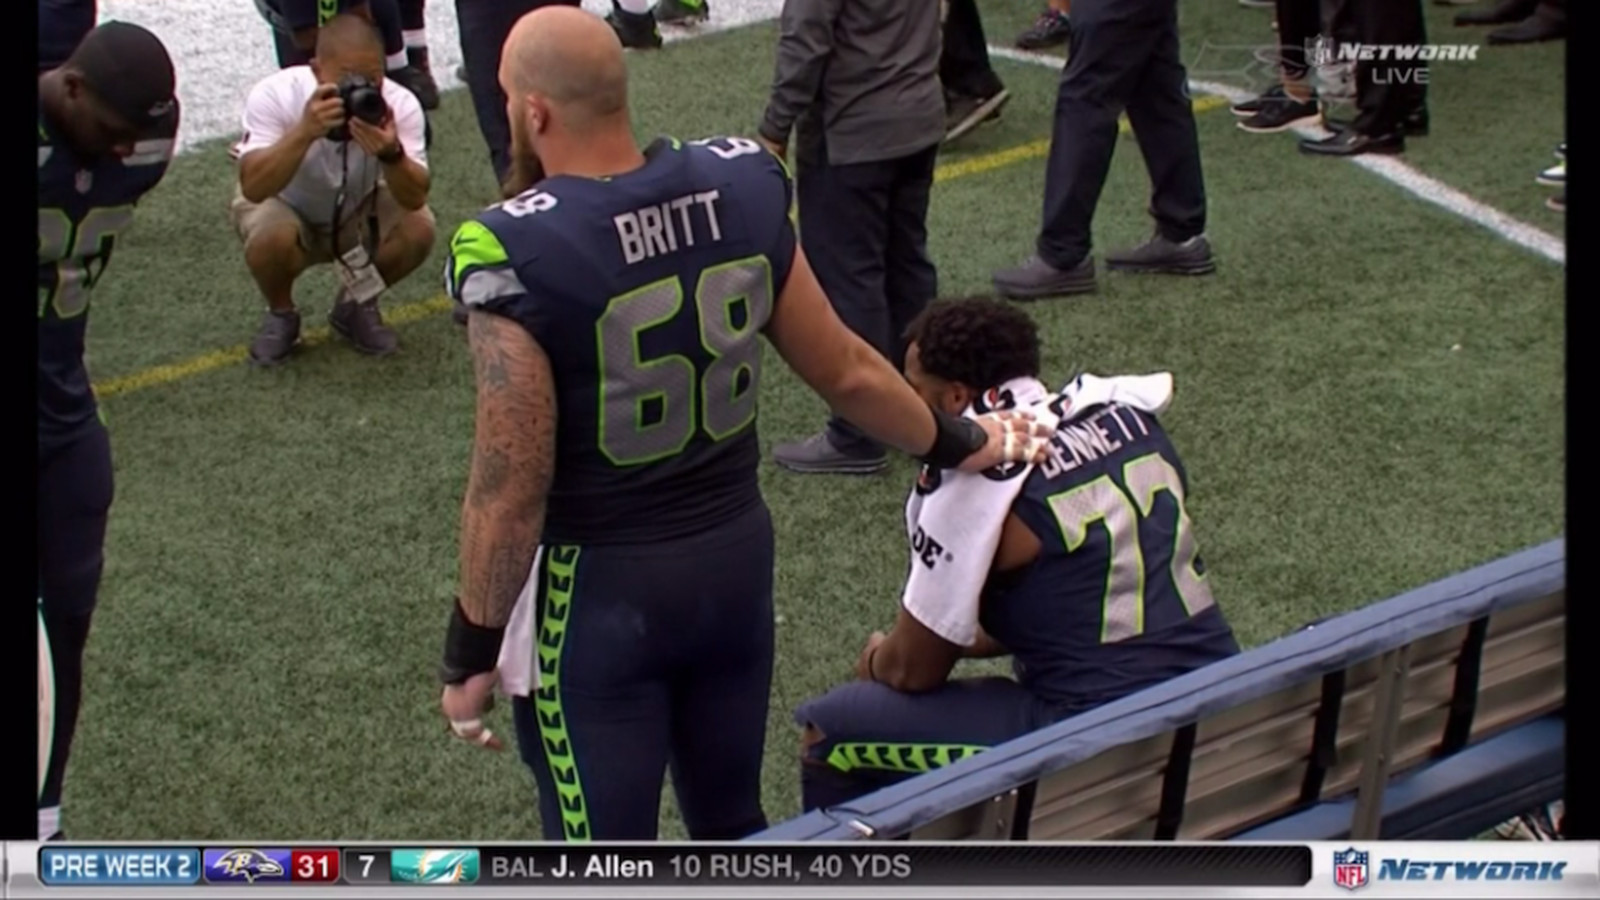 Justin Britt stands by Michael Bennett in support during national anthem protest